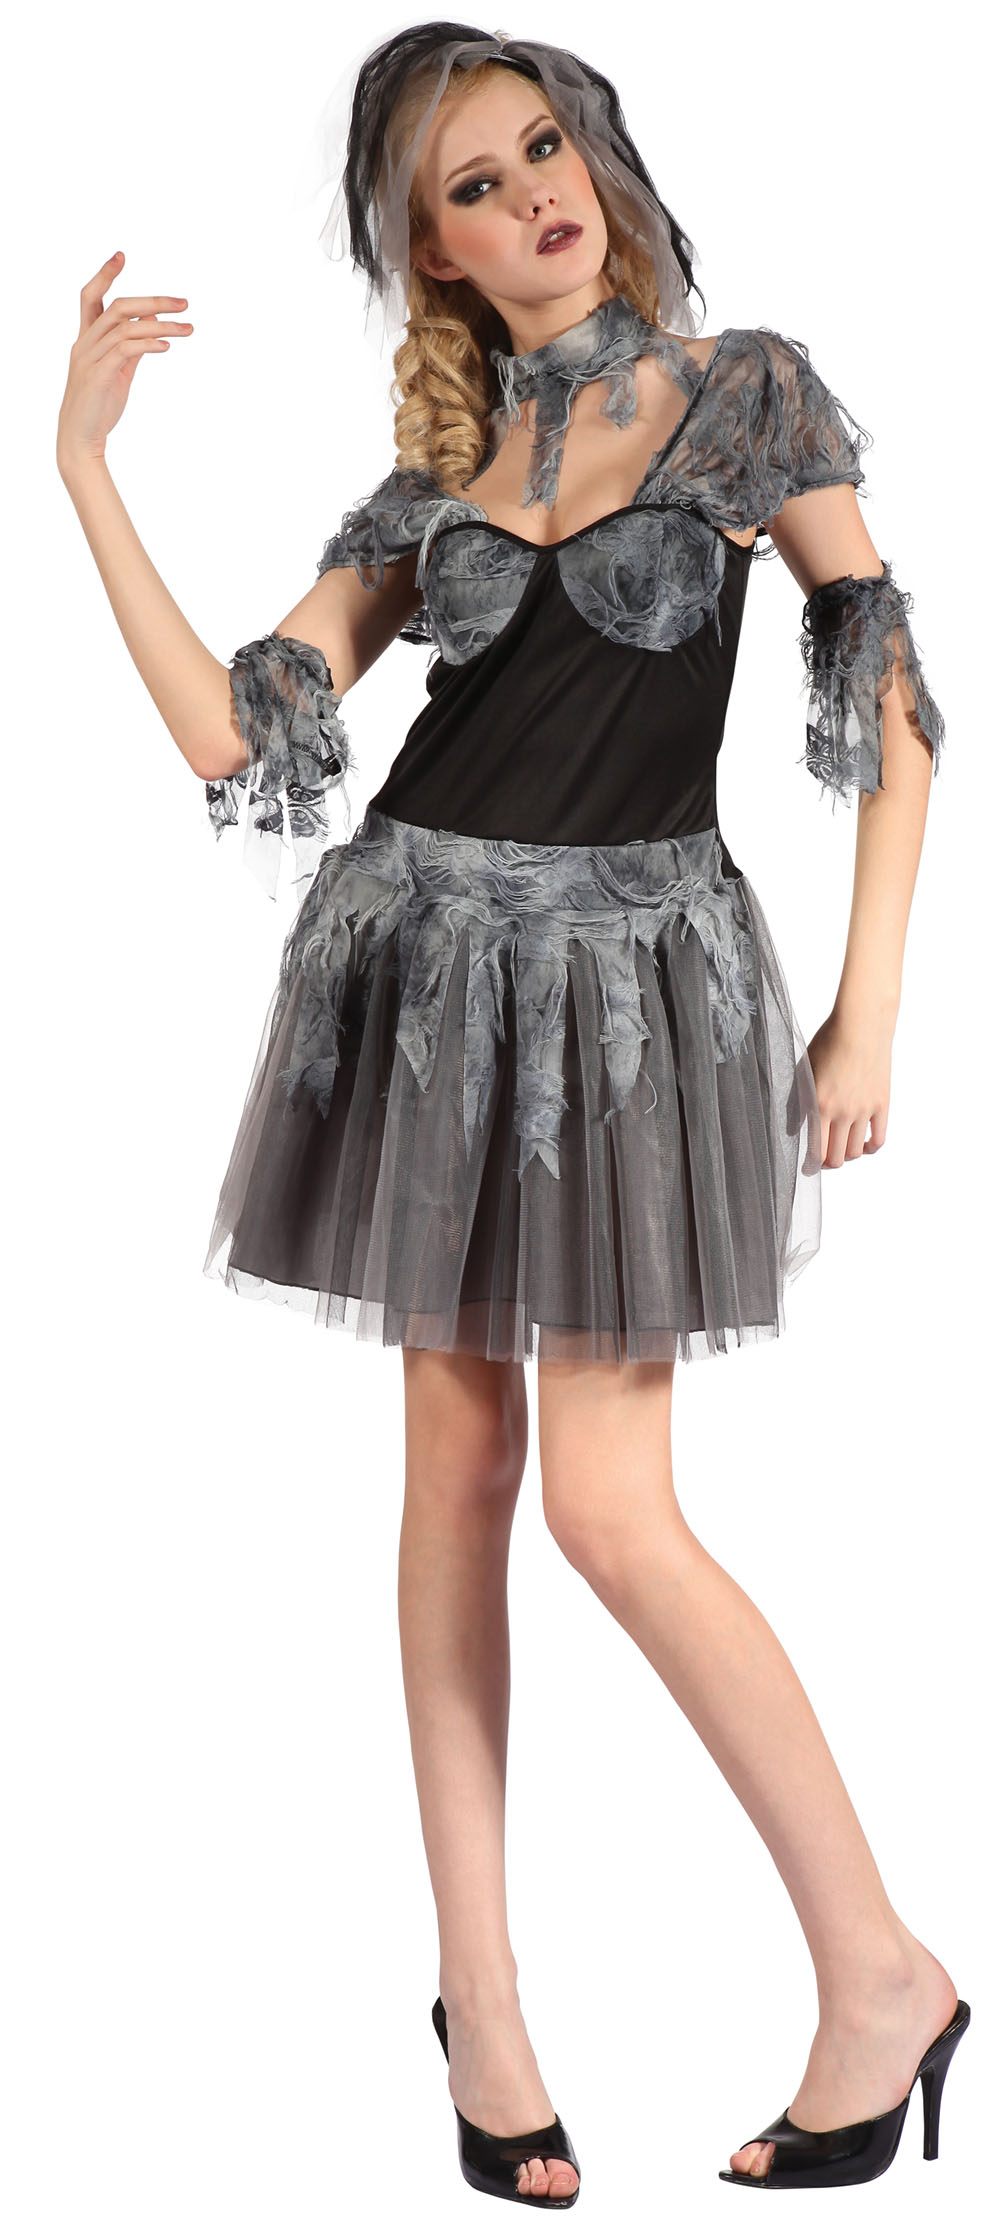 Ladies Gothic Wedding Gown Fancy Dress Costume Womens Outfit UK 10-14